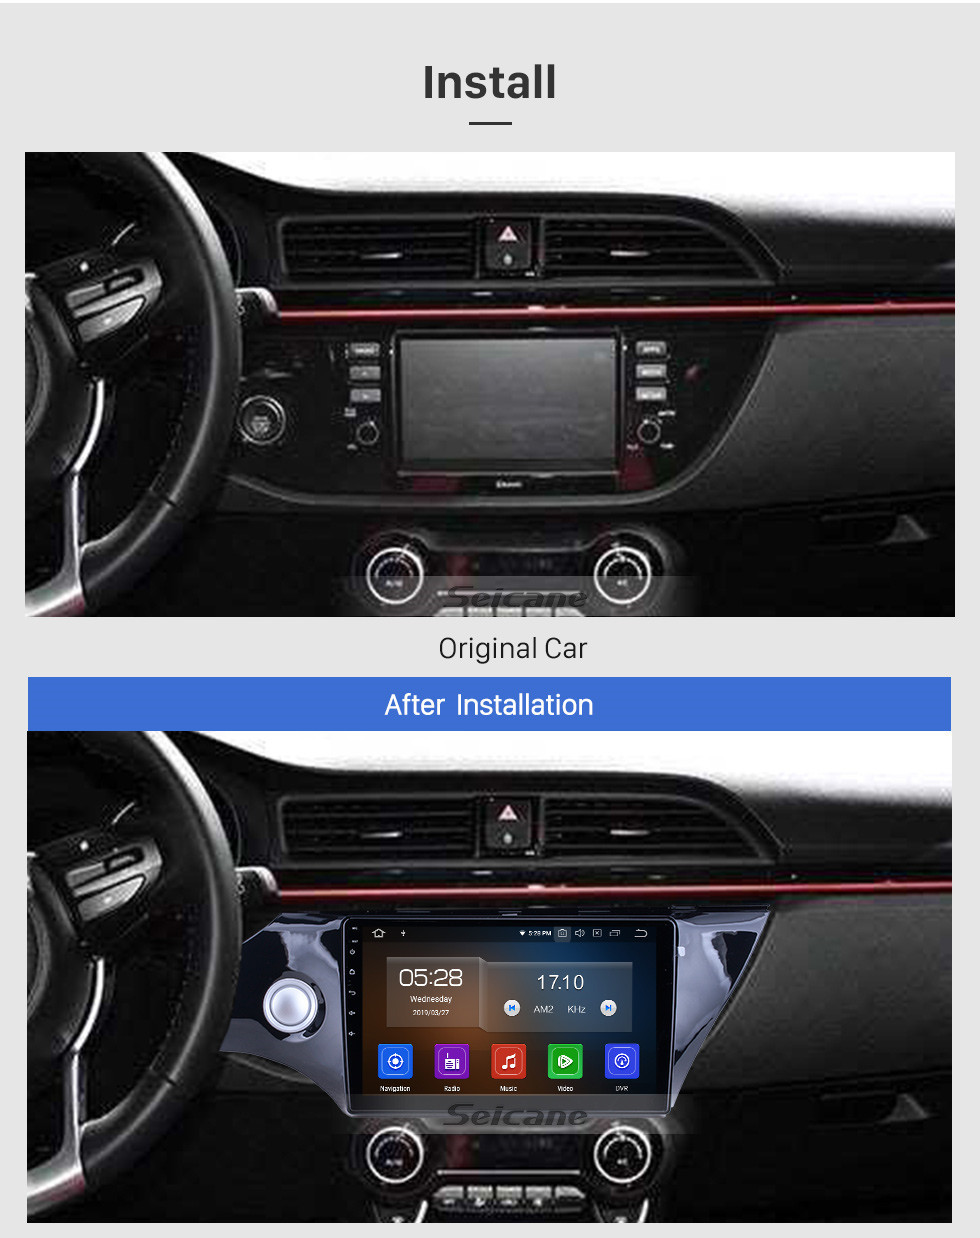 Seicane OEM 10.1 inch Android 10.0 for 2017 2018 Kia K2 Radio Bluetooth HD Touchscreen GPS Navigation System Carplay support Digital TV